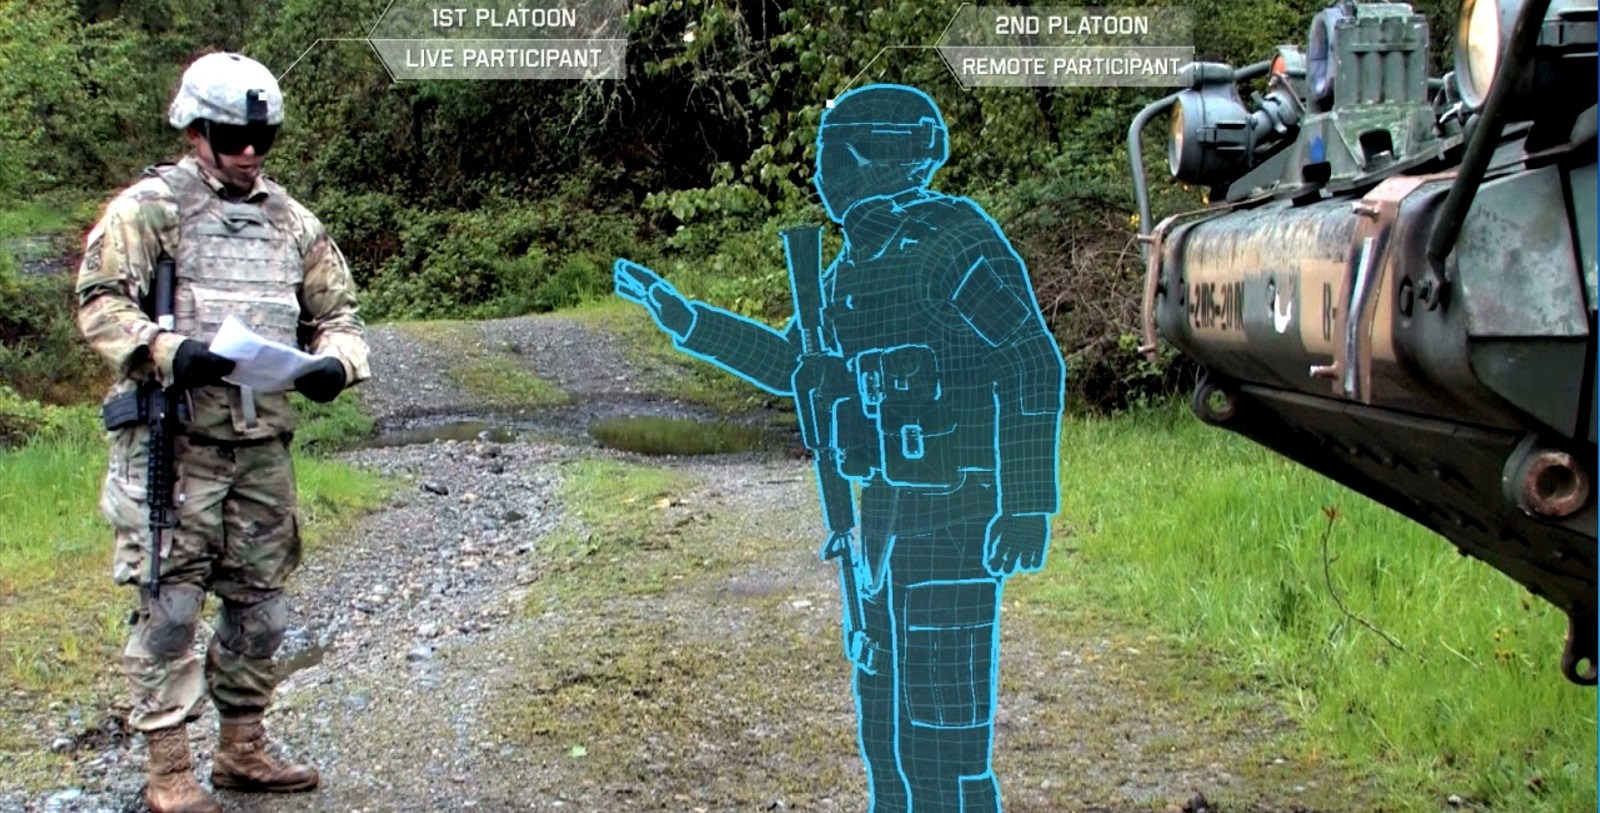 The HoloLens Soldier